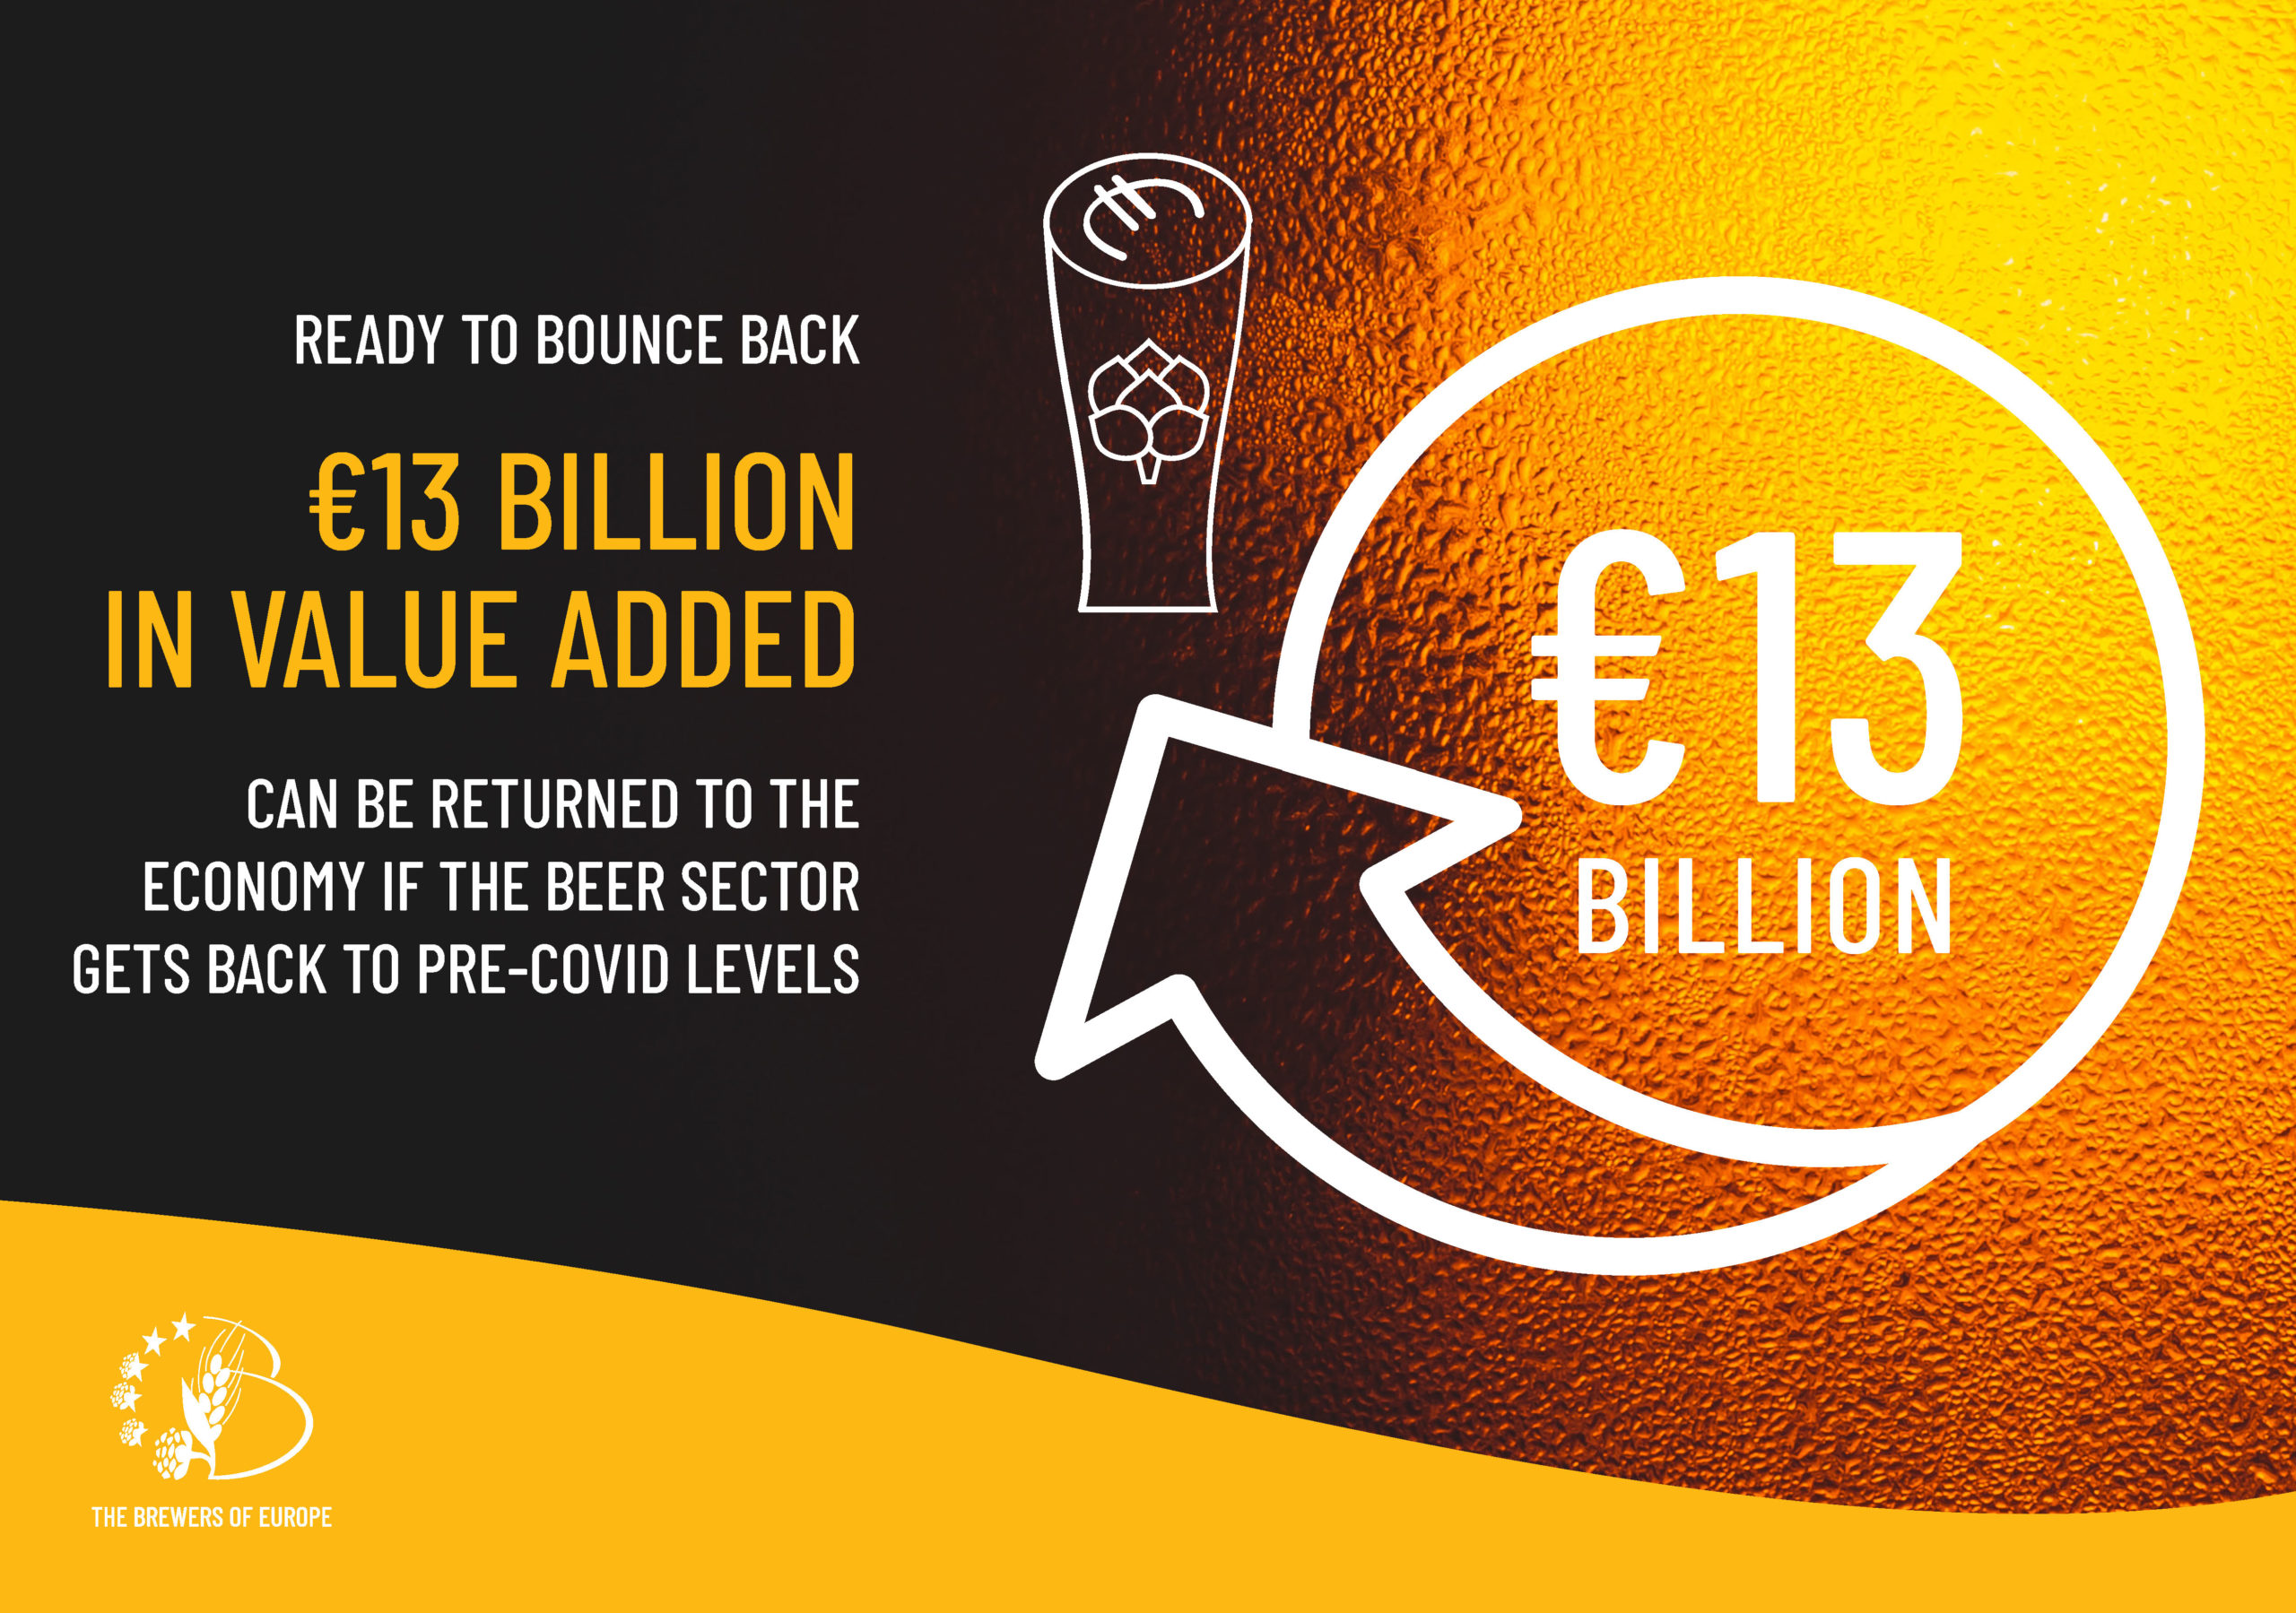 €13 billion in value added can be returned to the economy if the beer sector gets back to pre-covid levels